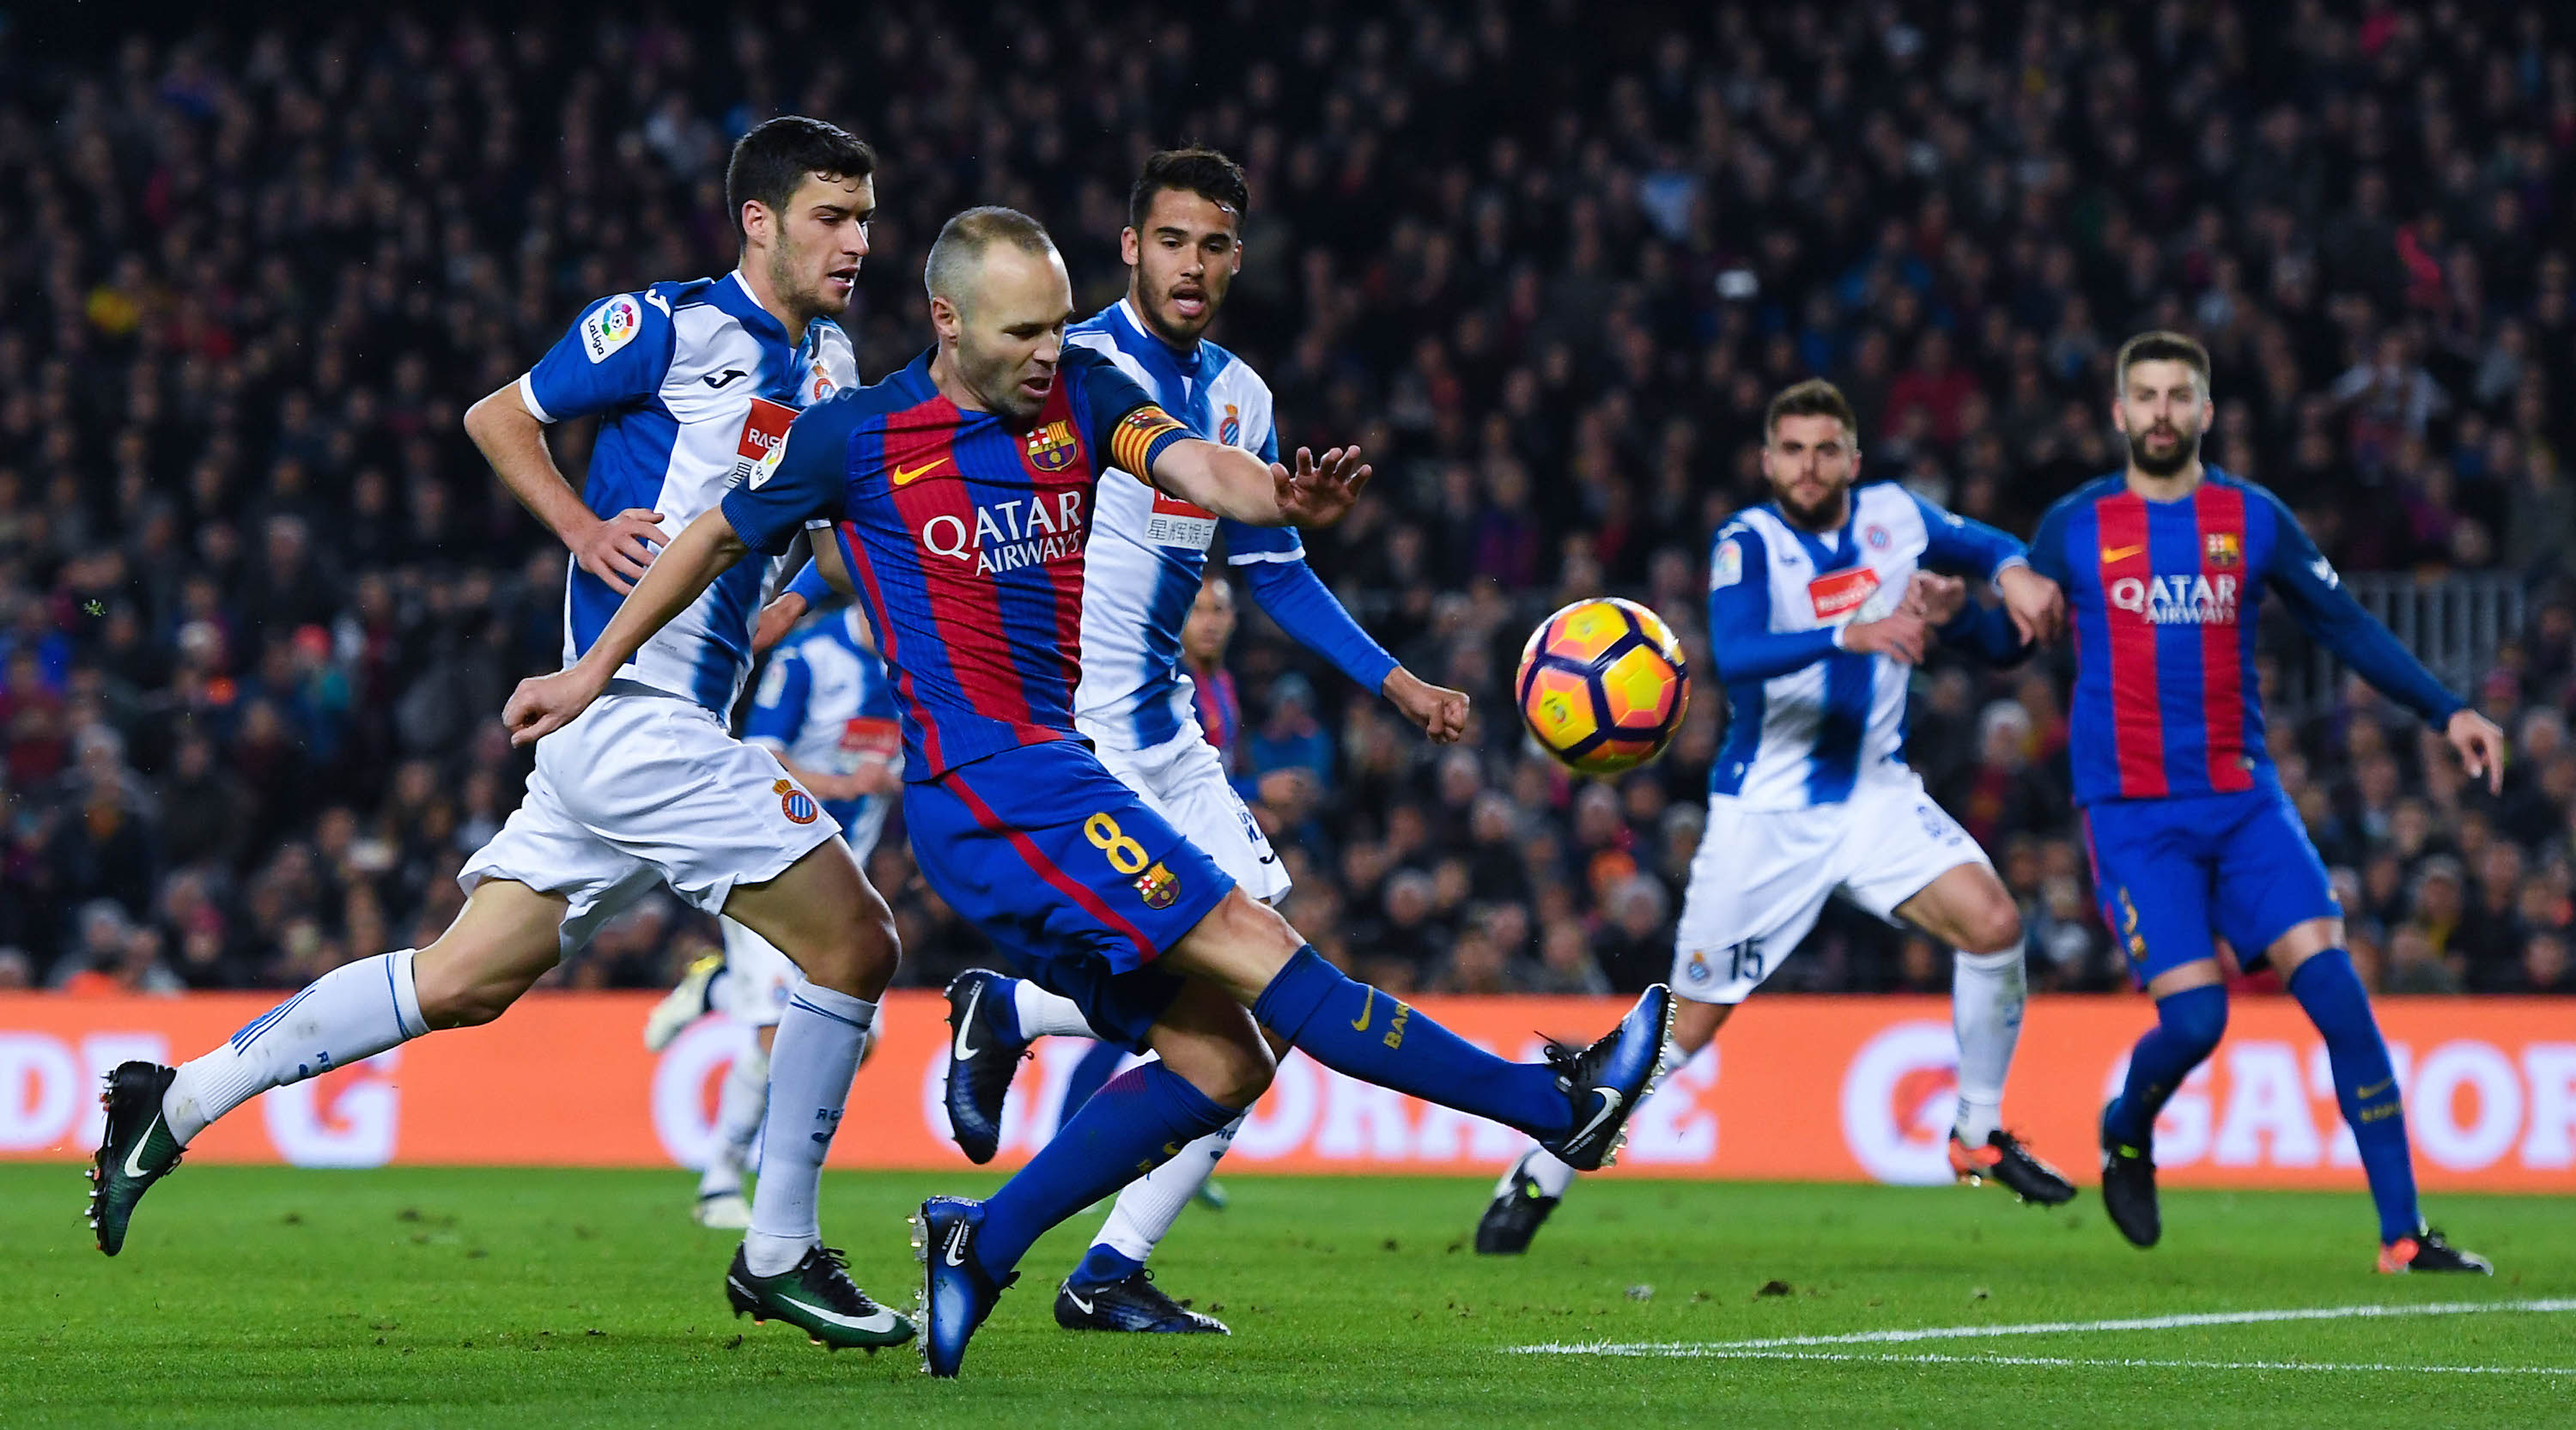 BARCELONA, SPAIN - DECEMBER 18: Andres Iniesta of FC Barcelona shoots towards goal during the La Liga match between FC Barcelona and RCD Espanyol at the Camp Nou stadium on December 18, 2016 in Barcelona, Spain. (Photo by David Ramos/Getty Images)